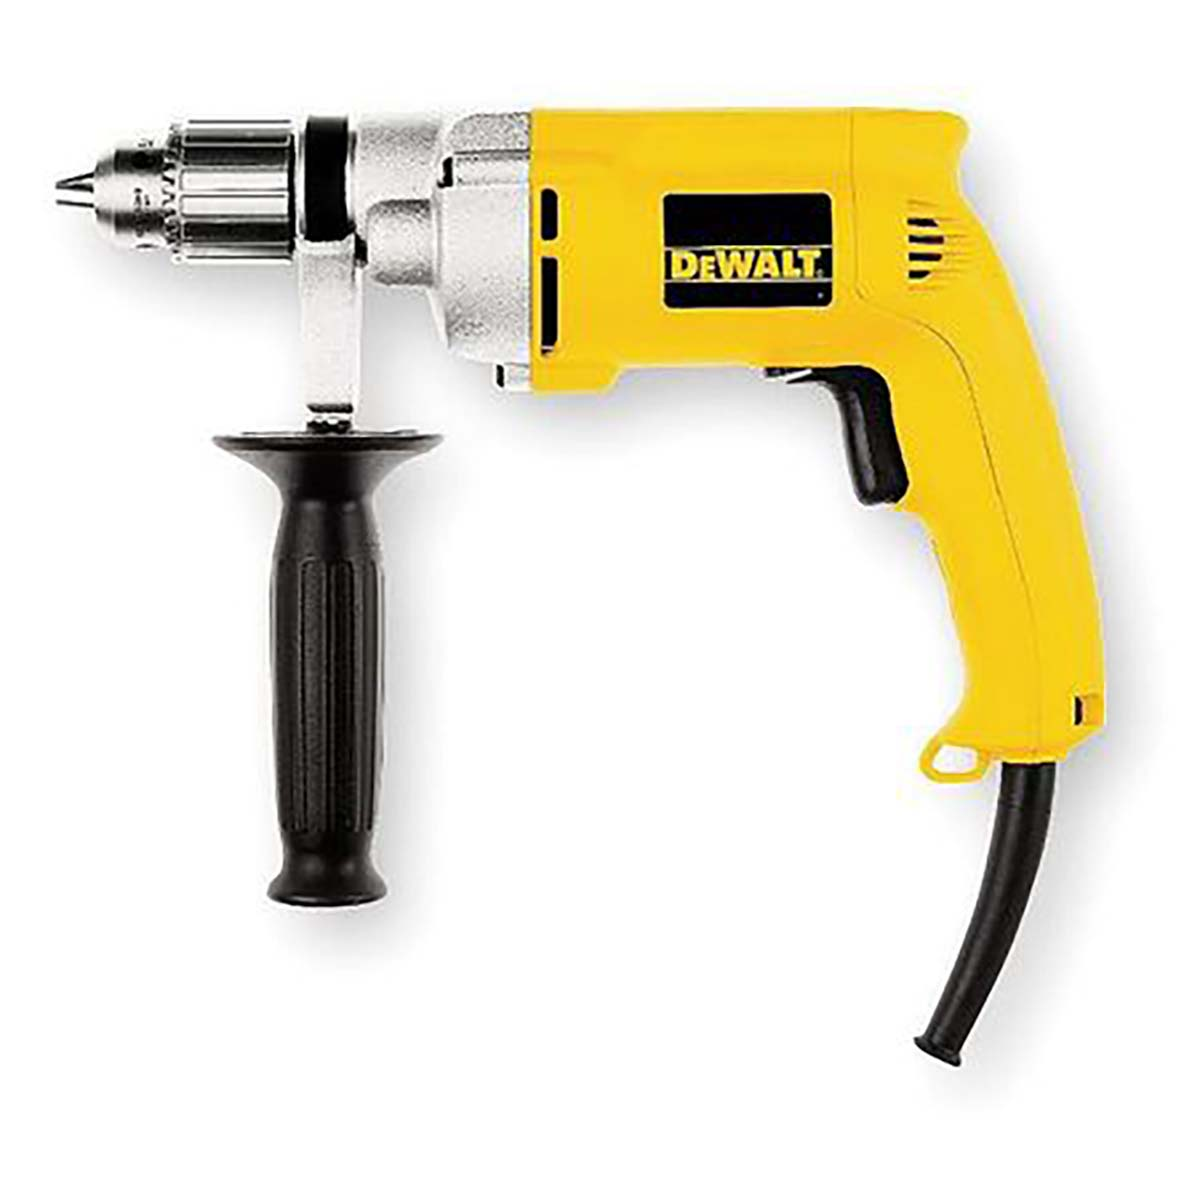 "0-4000 rpm VSR Drywall Screwdriver 6.0 amp 1/2"" 0-850 rpm VSR Drill 3 wire plug 7.8 amp"